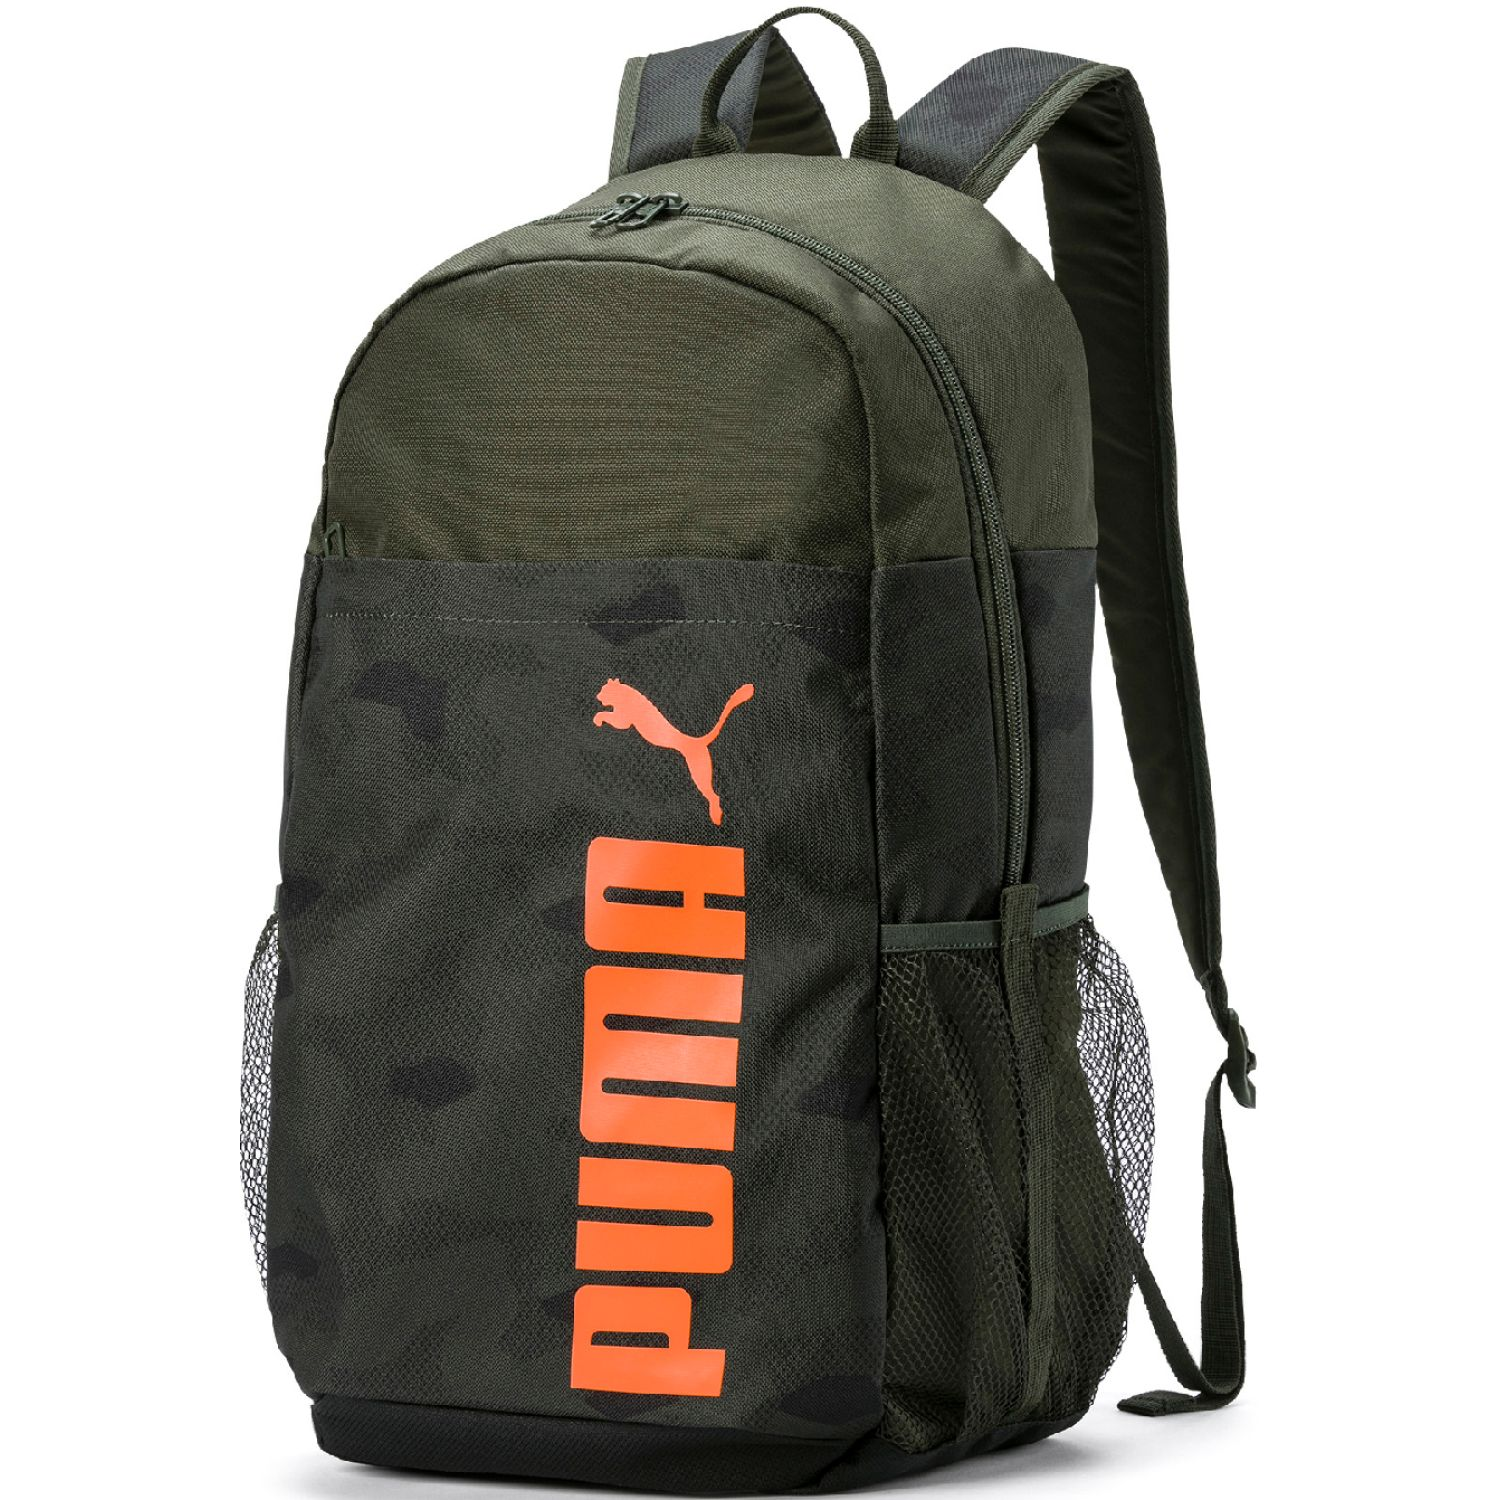 Puma puma style backpack Olivo Mochilas Multipropósitos